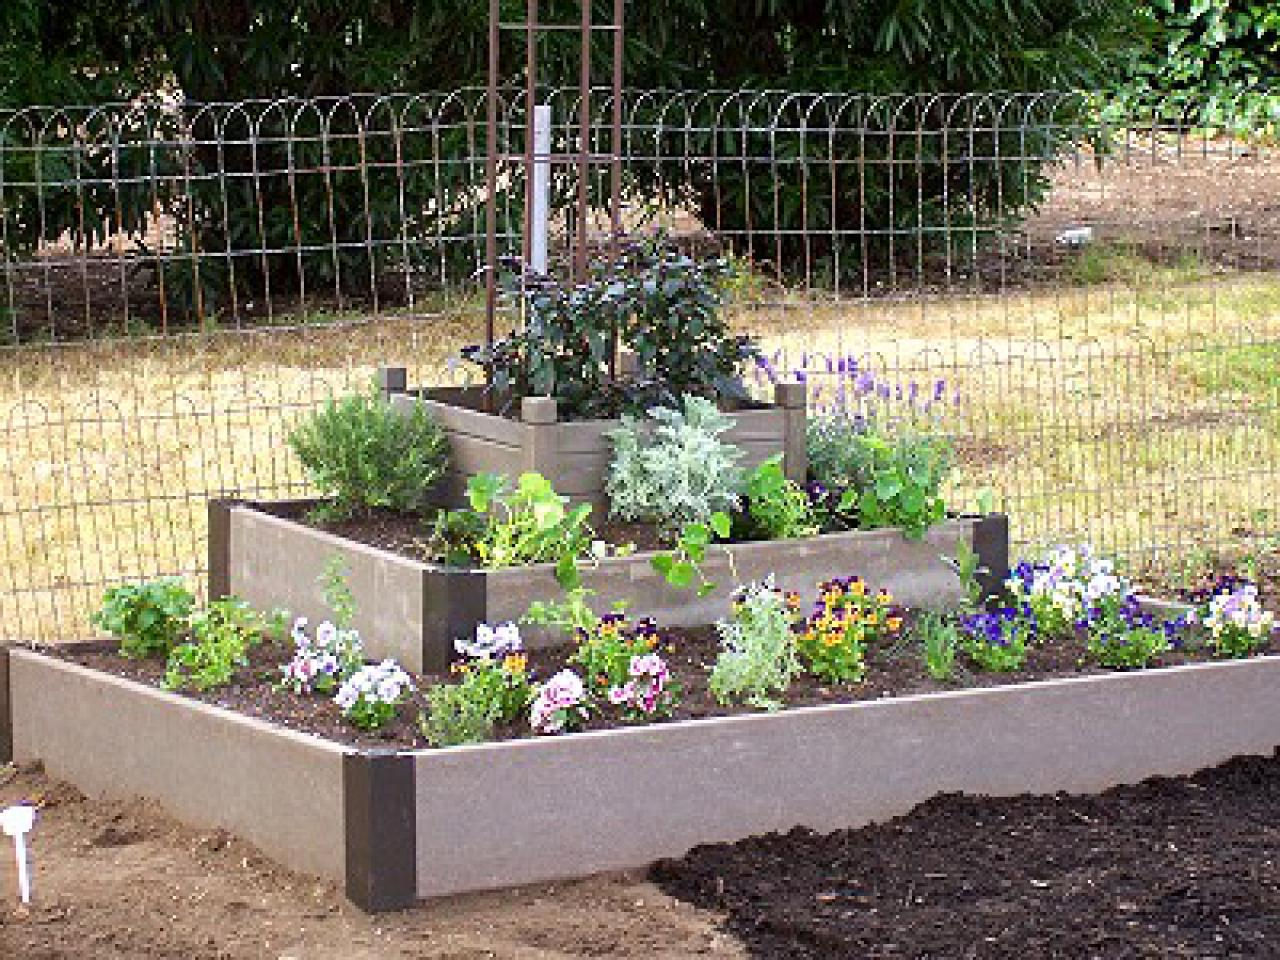 a to planting diy how ideas raised bed gardening make build garden